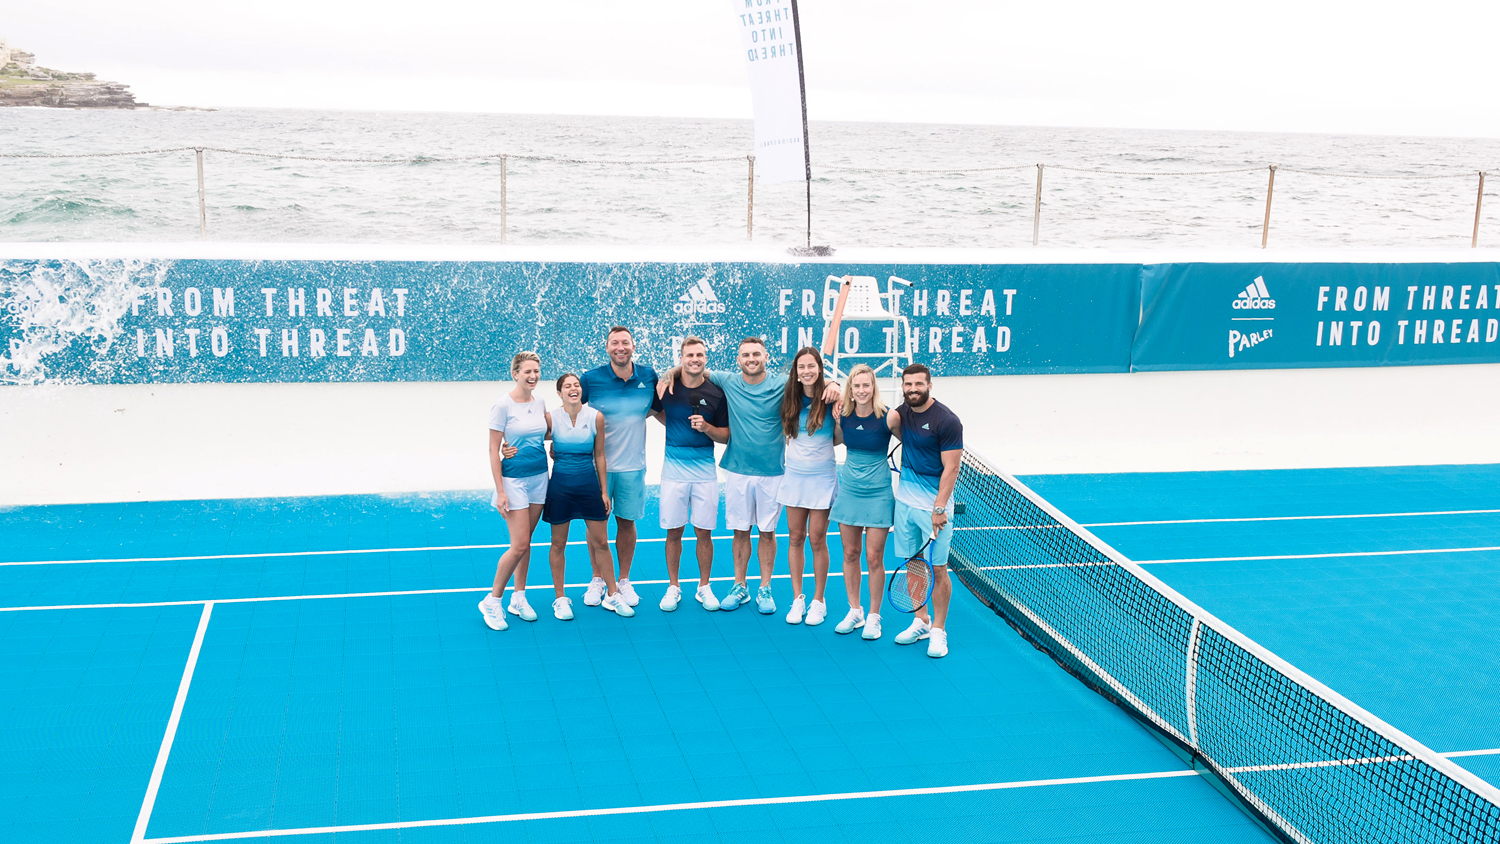 adidas x Parley tennis collection at Australian Open January 2019